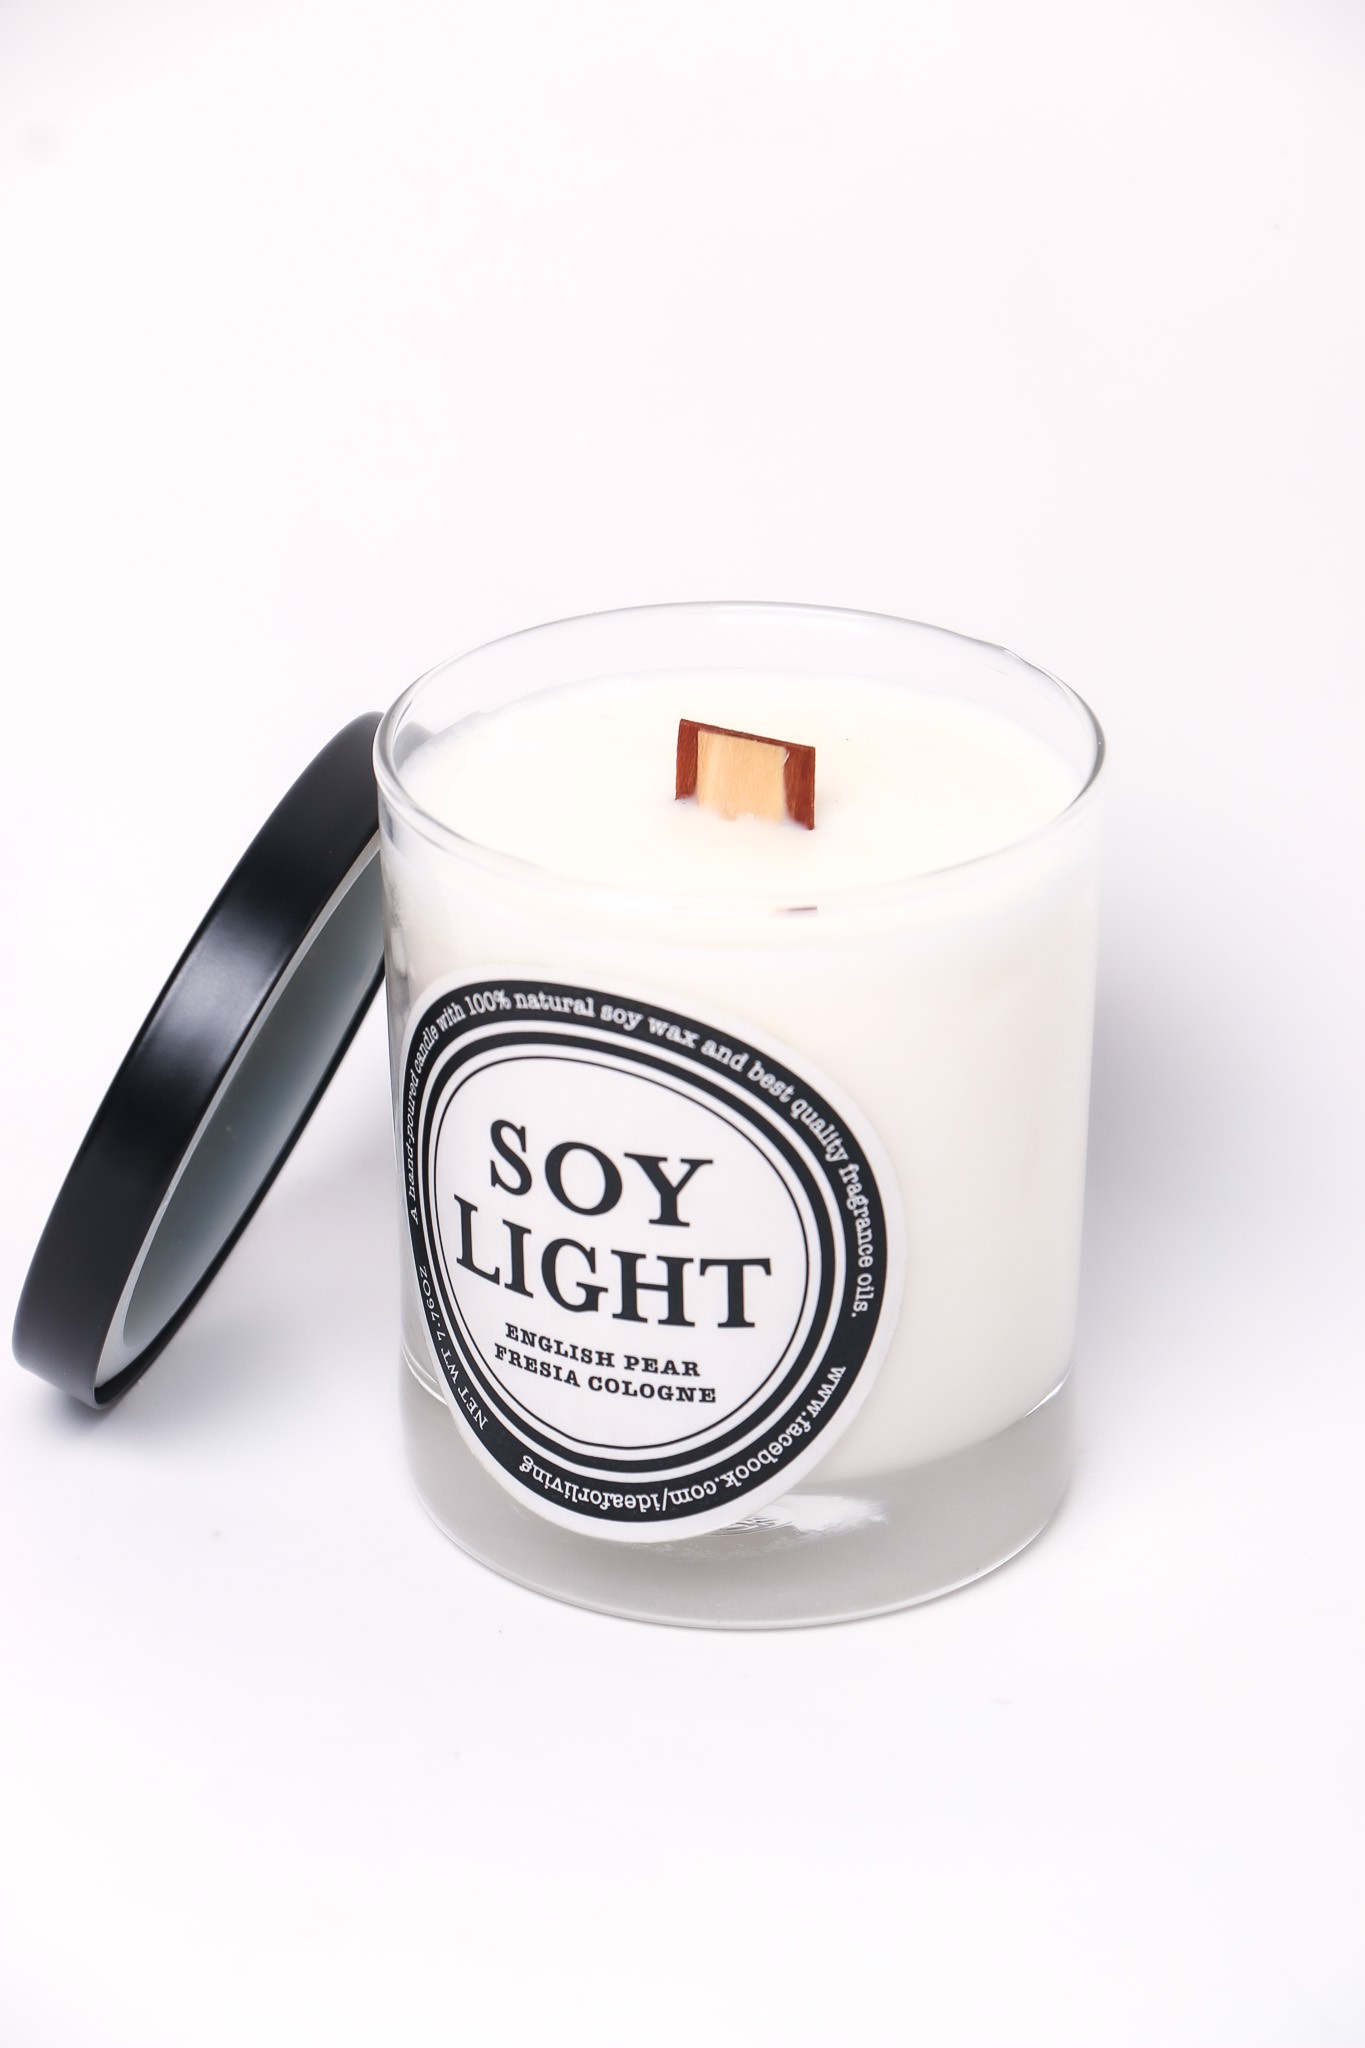 Nến Sáp Thơm Thiên Nhiên English Pear - Natural Soy Light Candle English Pear